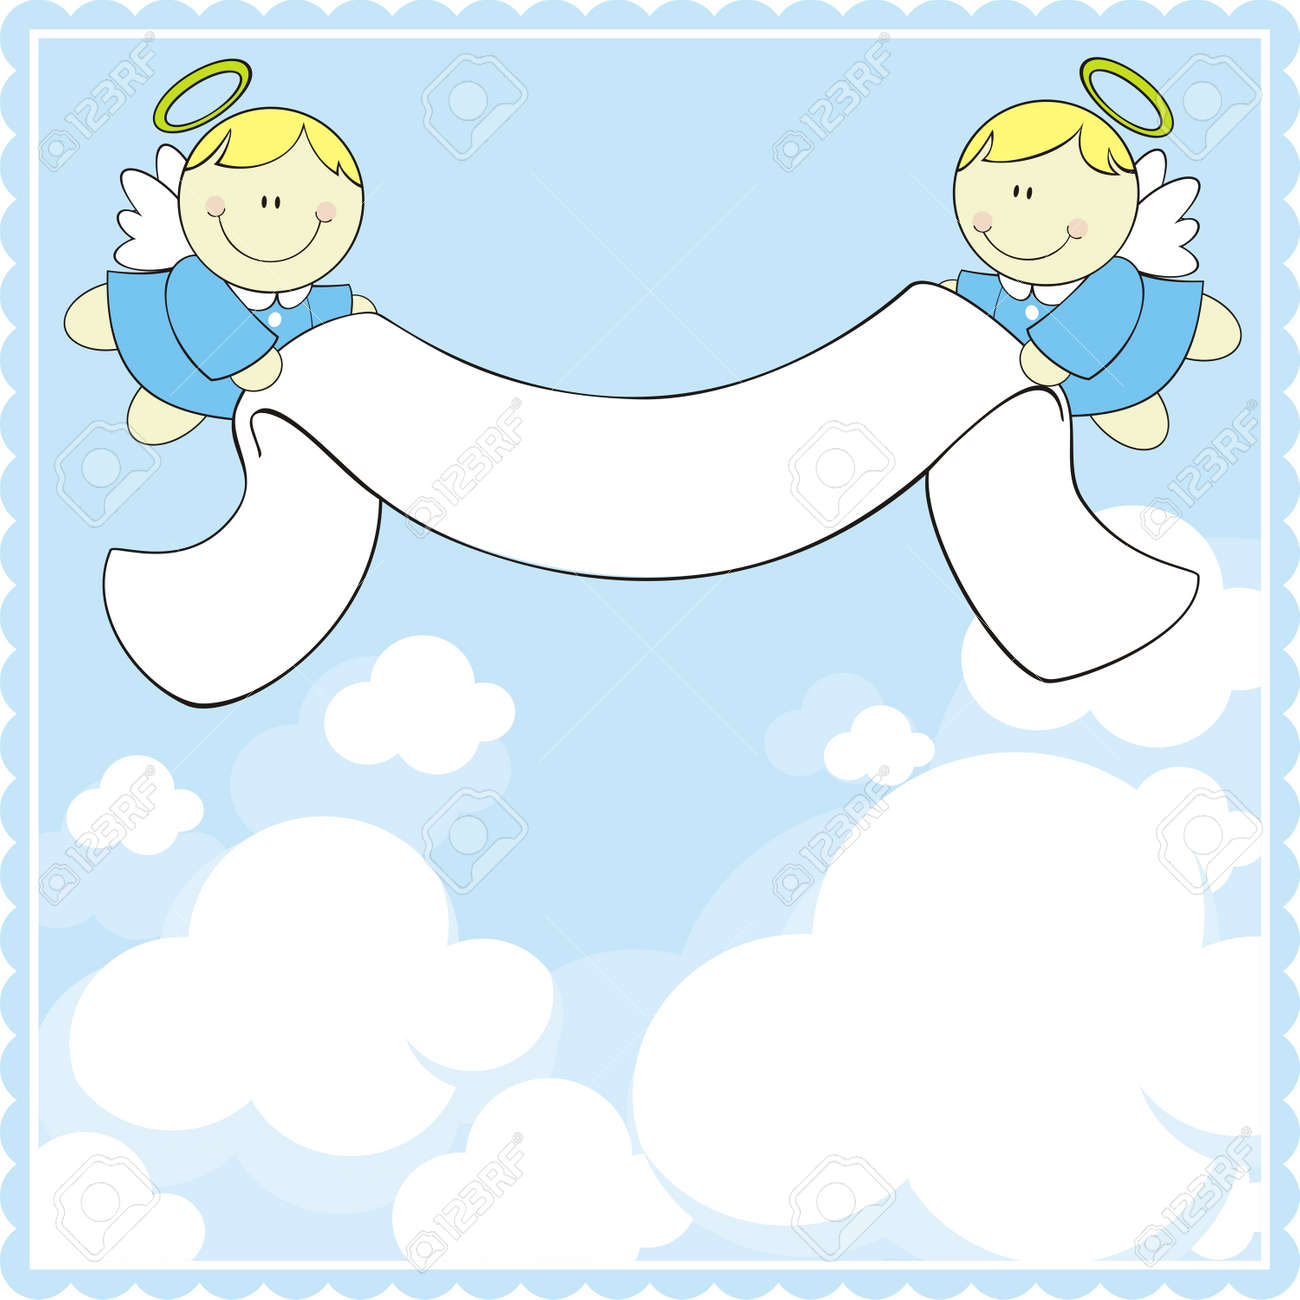 Images of Baby Boy Angels Vector Cute Baby Angels With